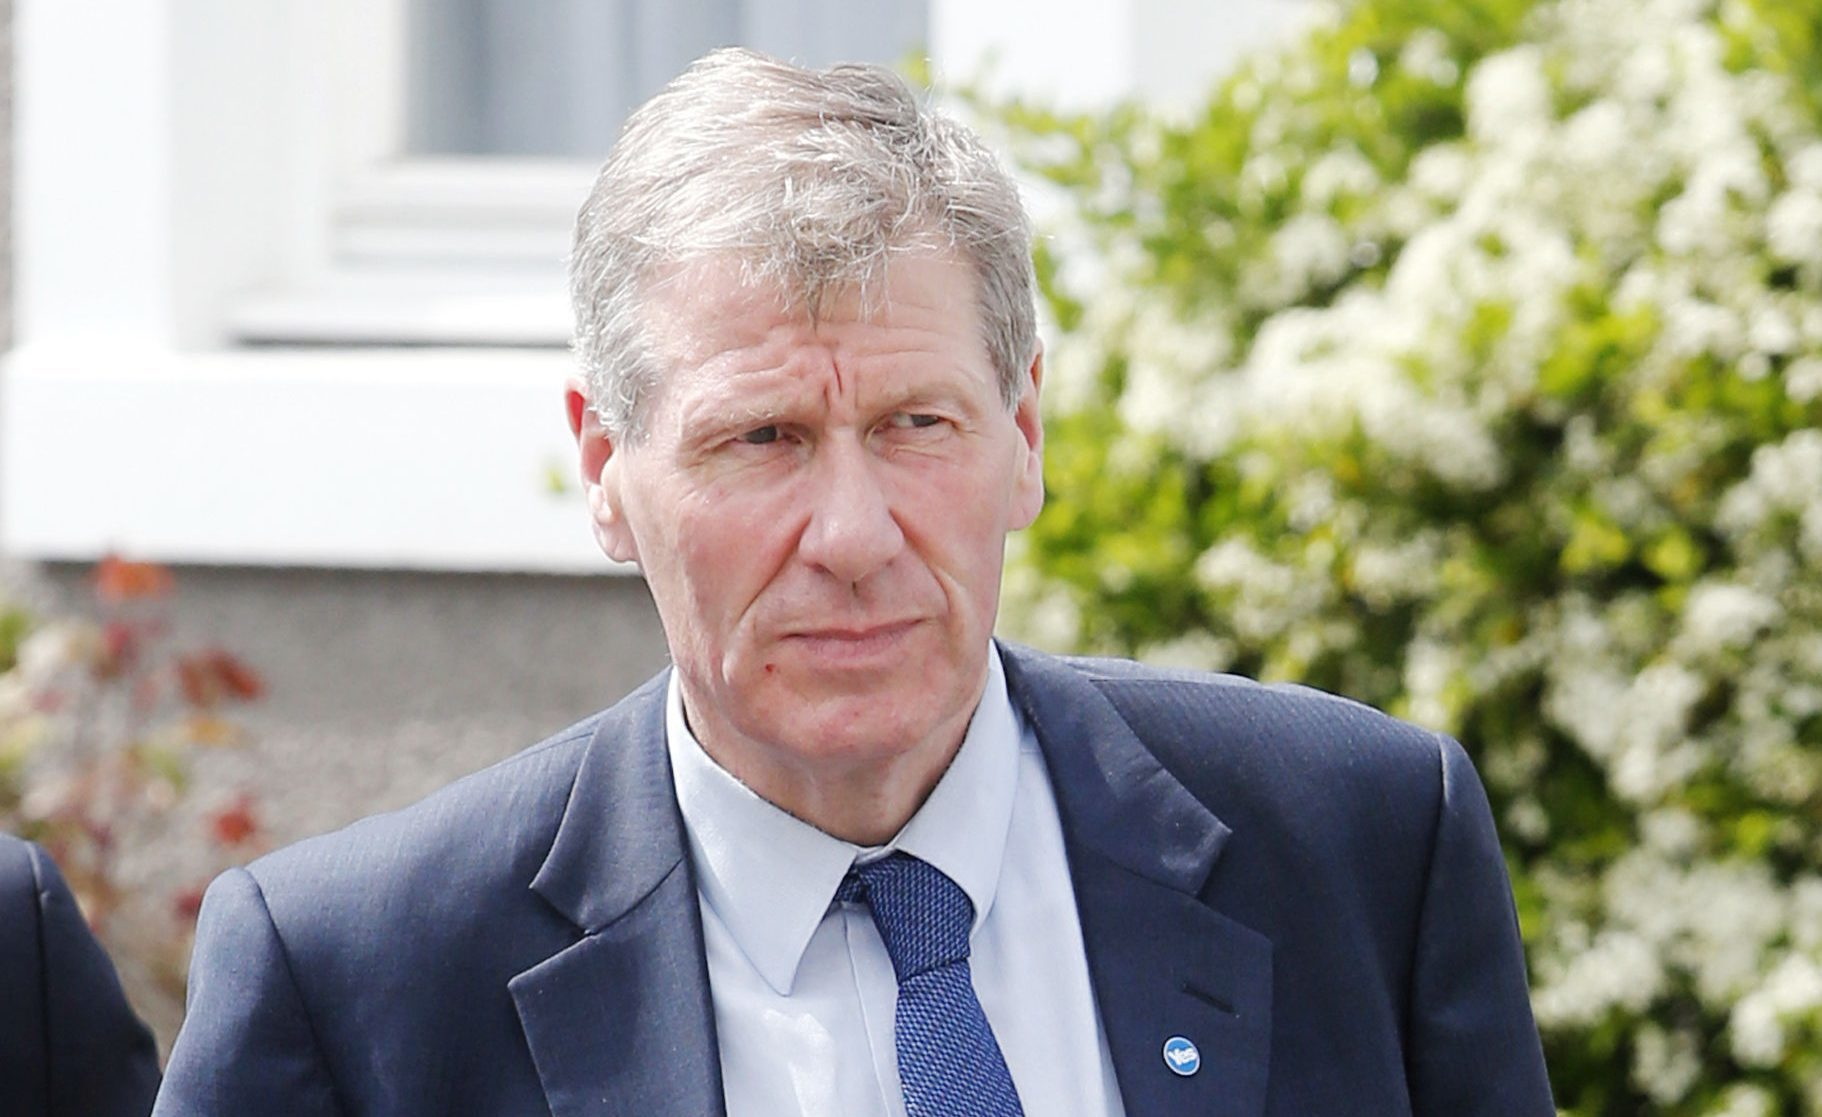 Former Justice Secretary Kenny MacAskill has said that the Scottish Government tried to secure more powers for Holyrood as part of a controversial prisoner transfer agreement between the UK and Libya.